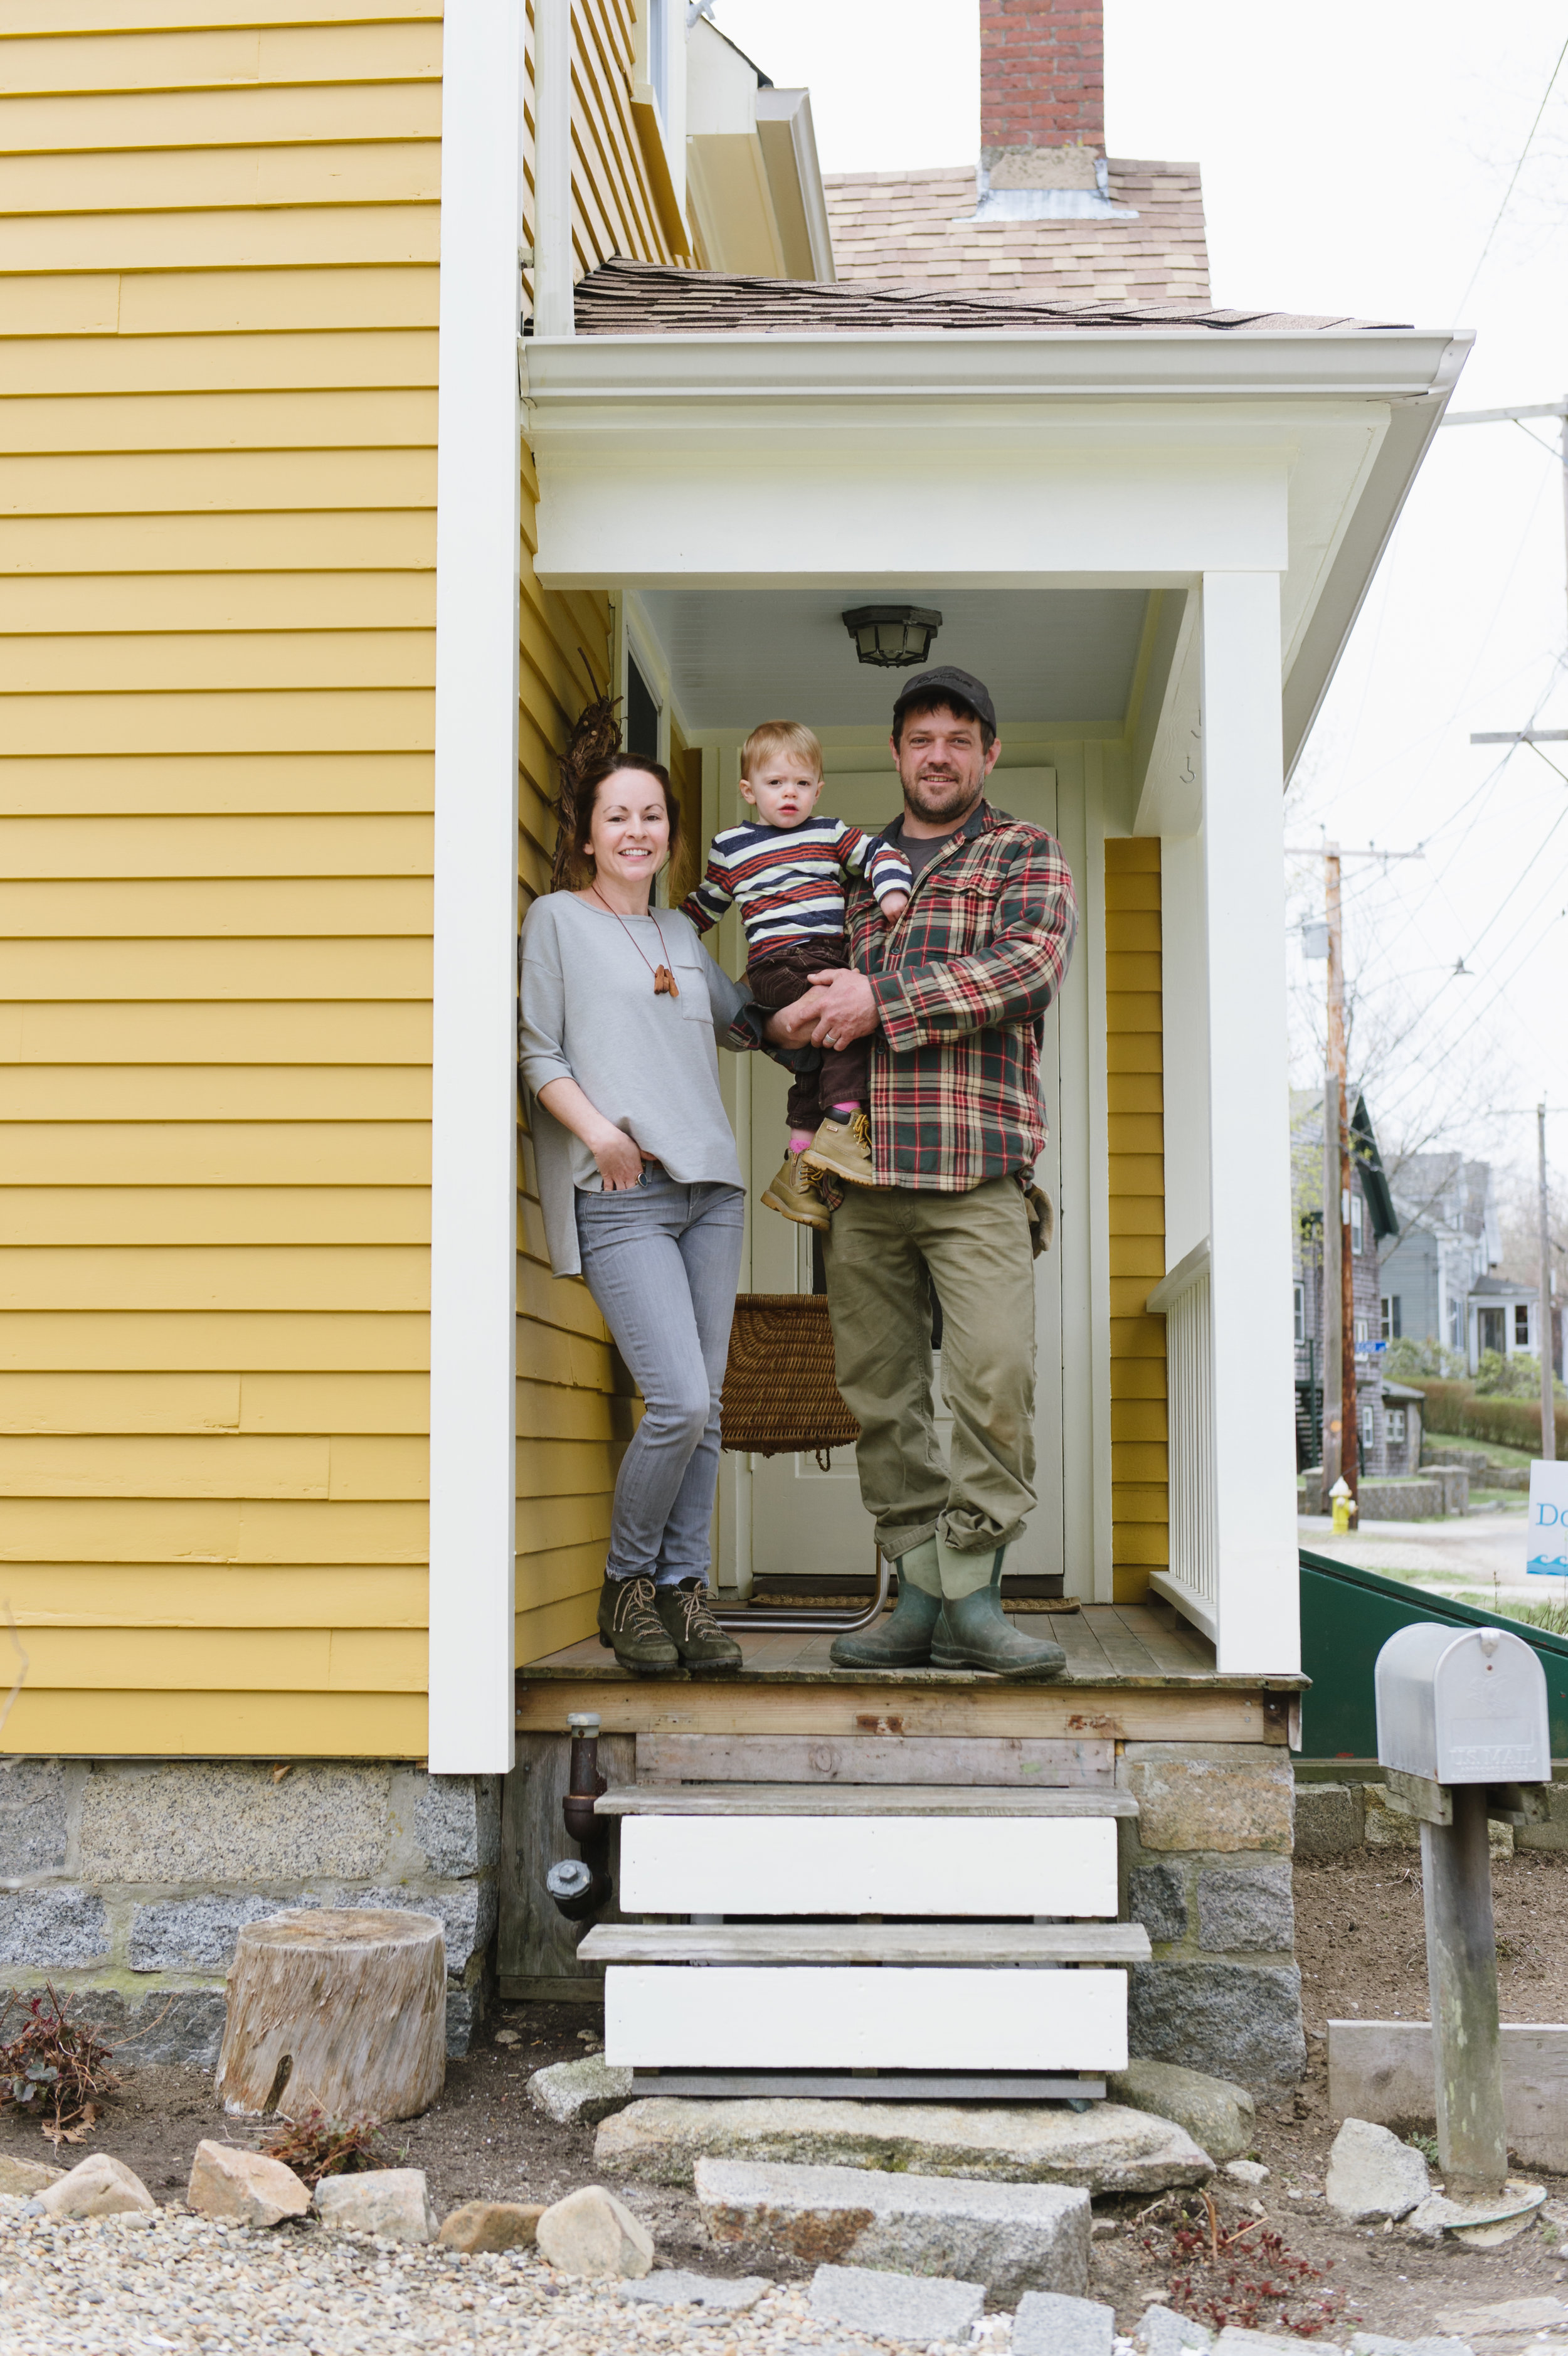 The Kristen, Ronin, and Dylan L'Abbe-Lindquist at their Pigeon Cove home. (Photograph by Katie Noble)